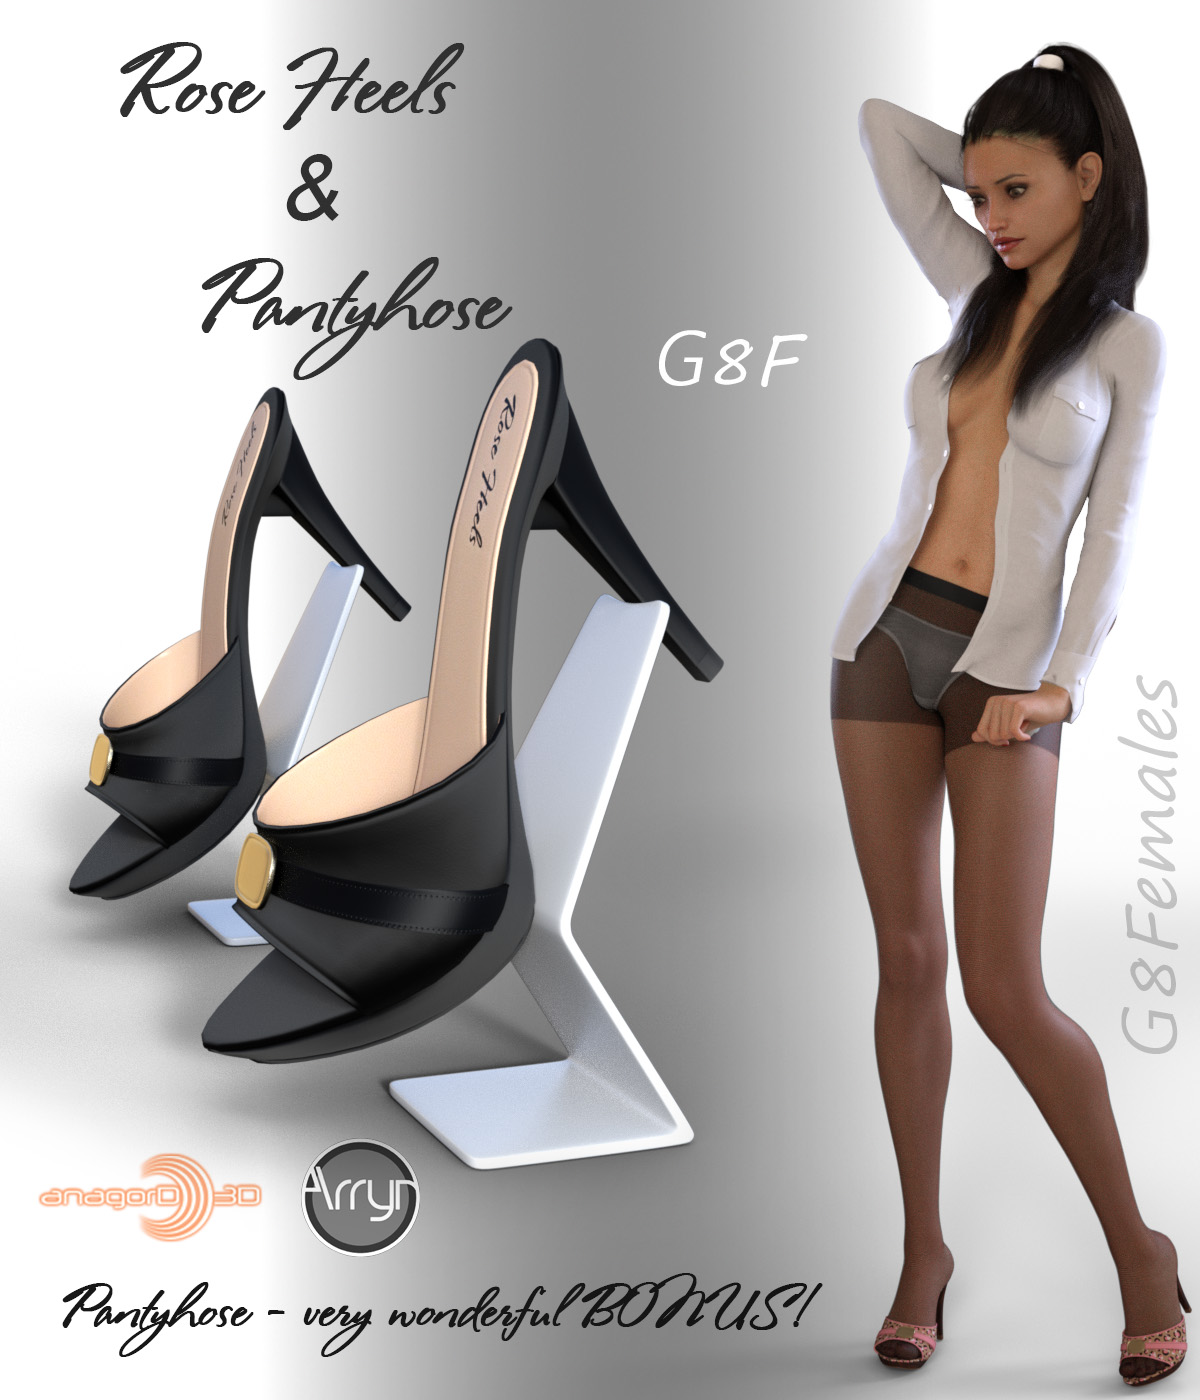 Rose Heels and Pantyhose G8F by Arryn